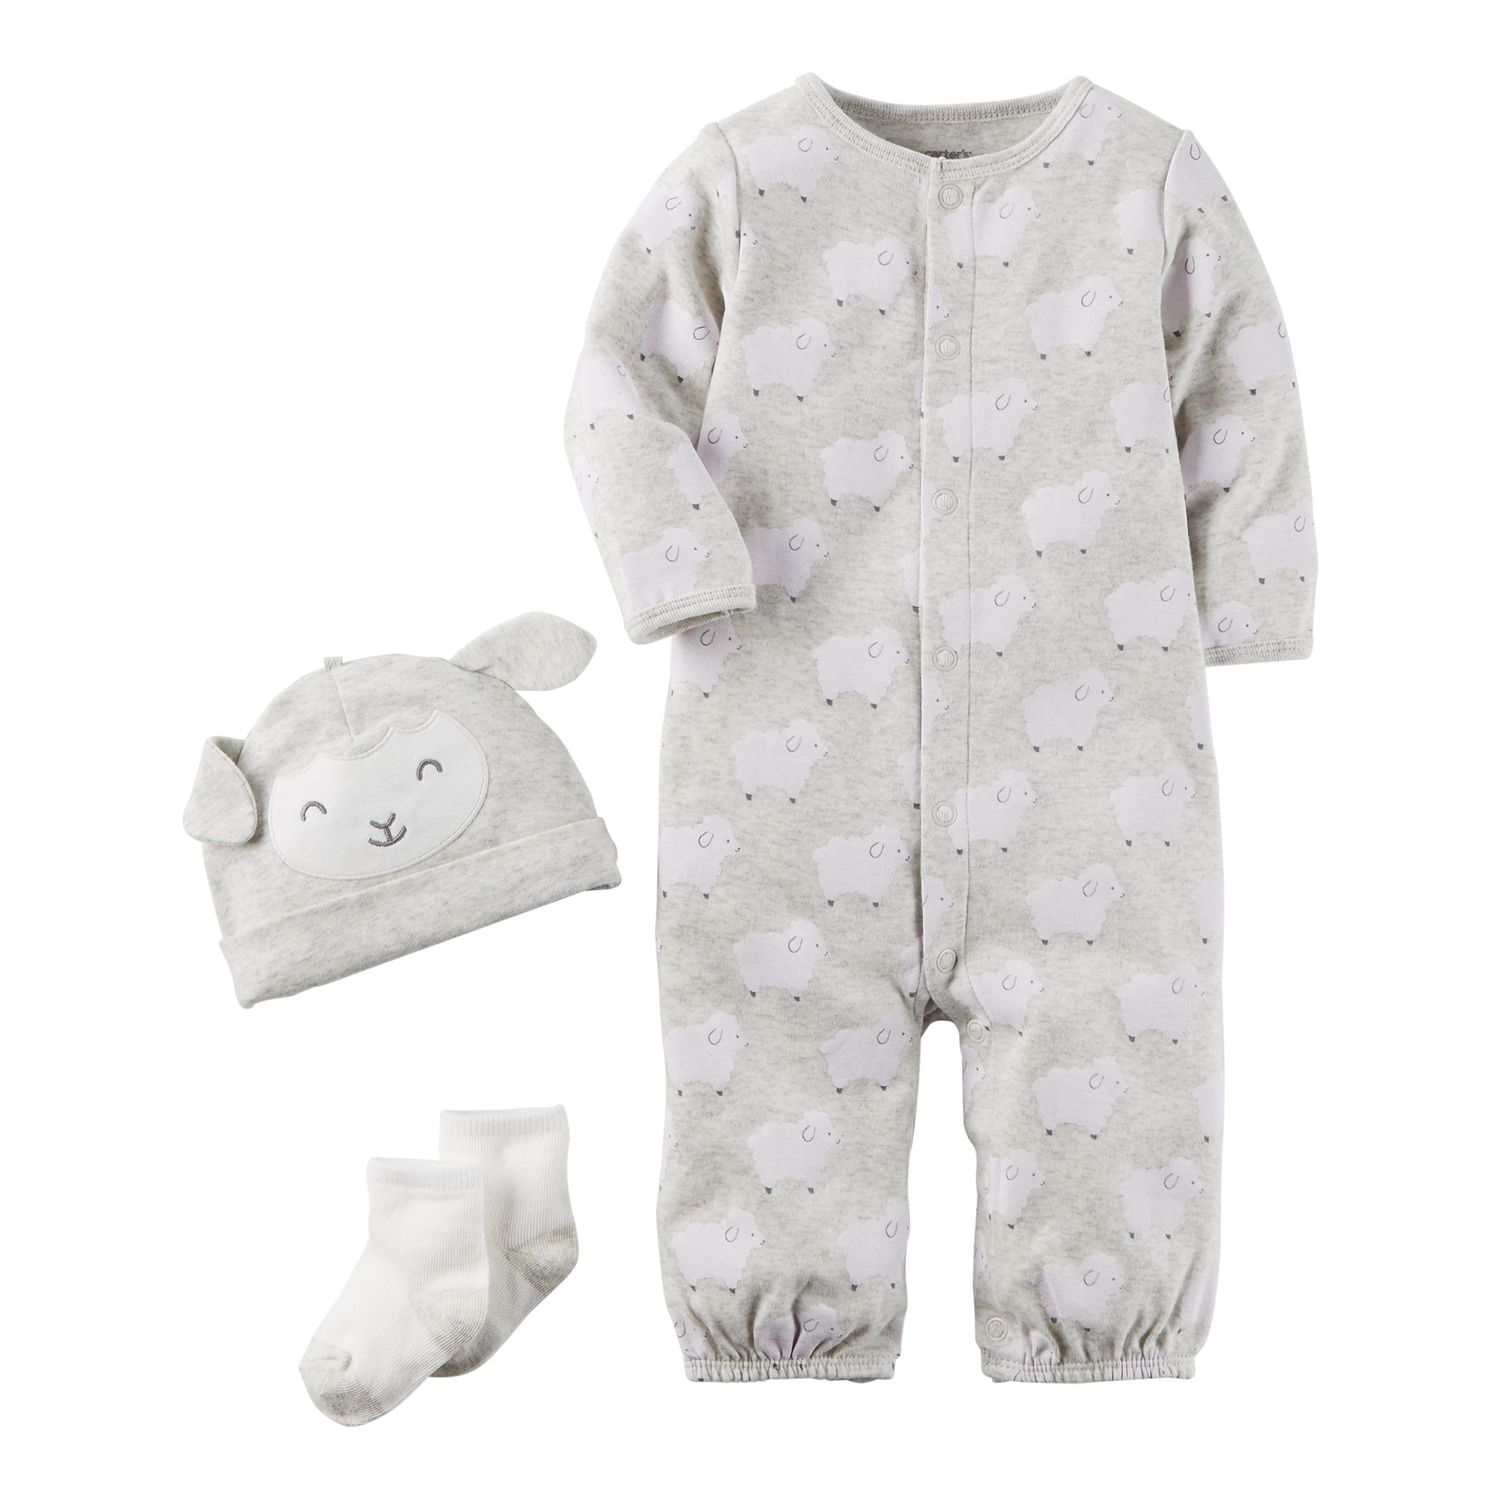 2953d9239 Baby Carter's 3-pc. Lamb Babysoft Take-Me-Home Coverall, Hat & Socks Set